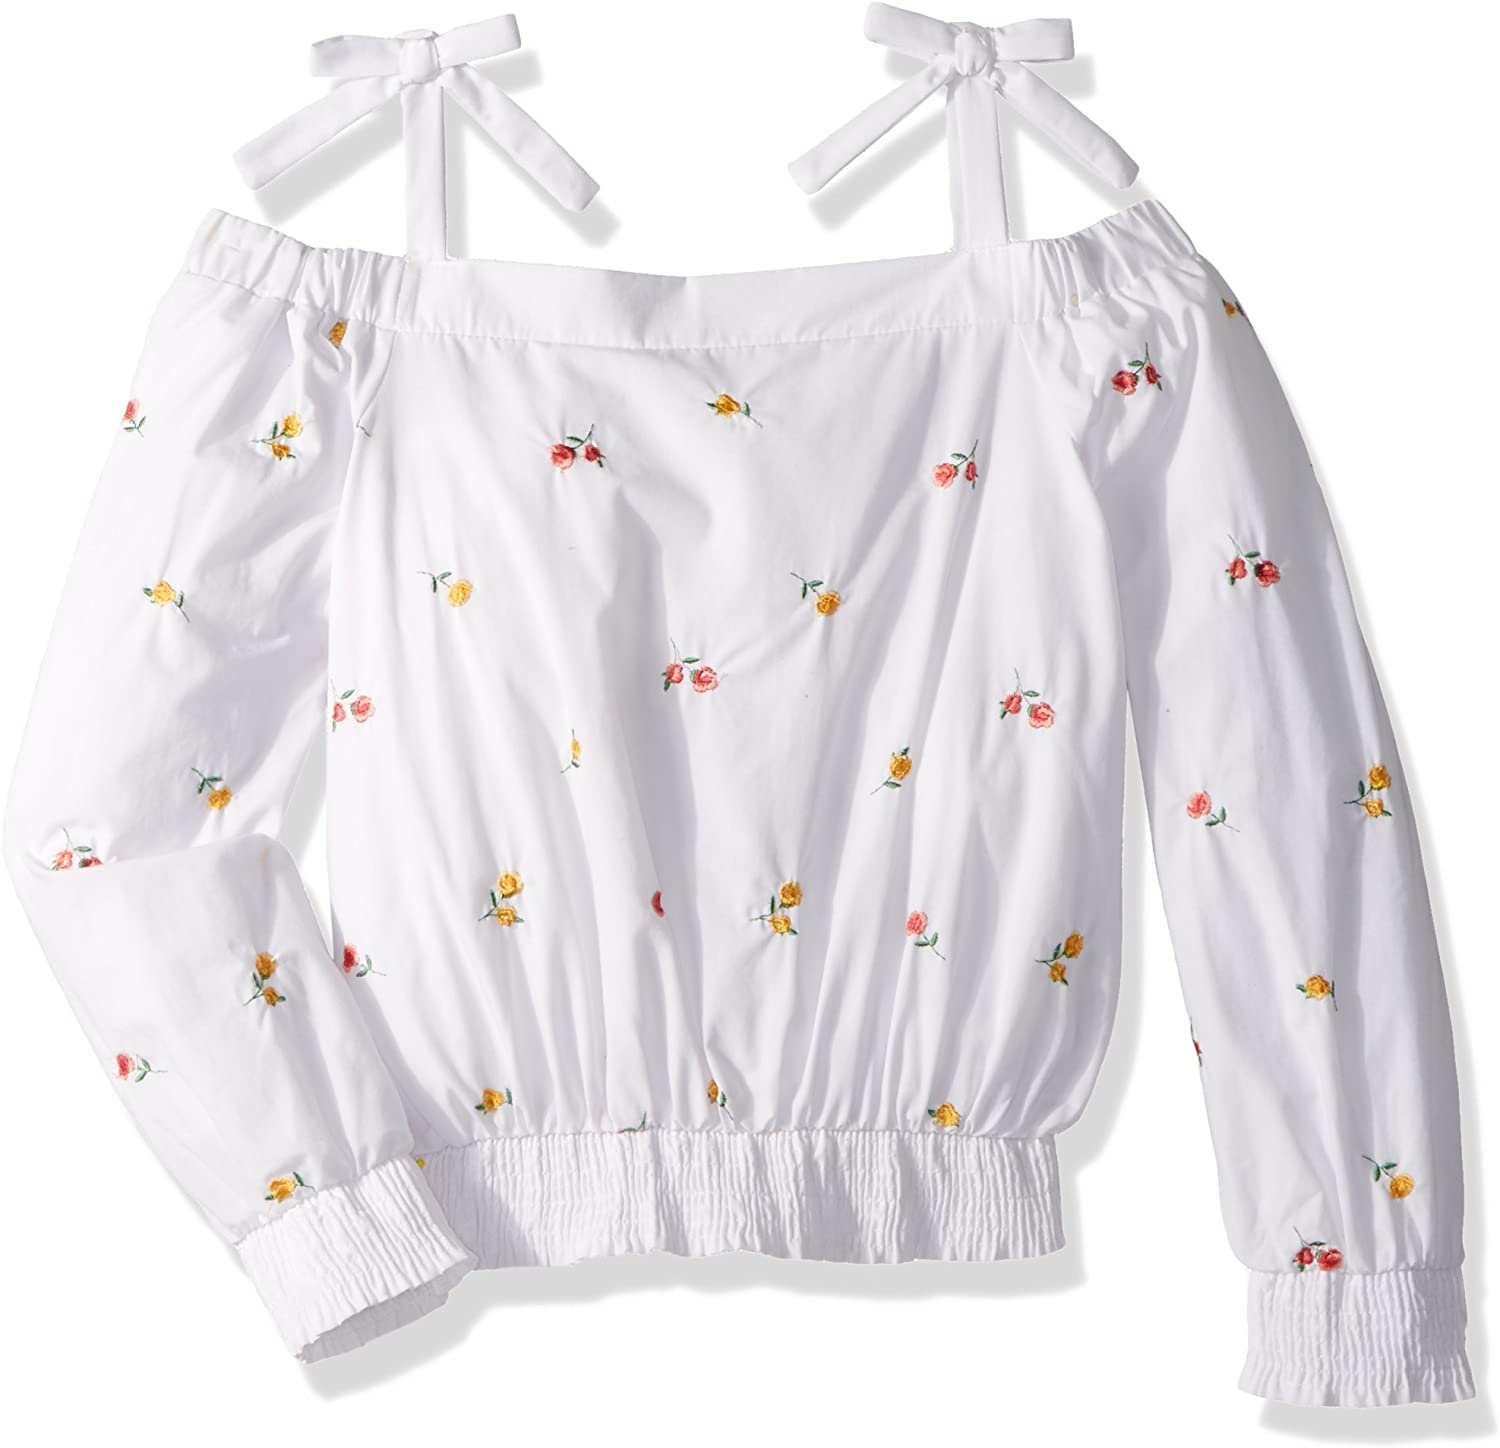 Maddie Girls Big Shoulder Top with Embroidery